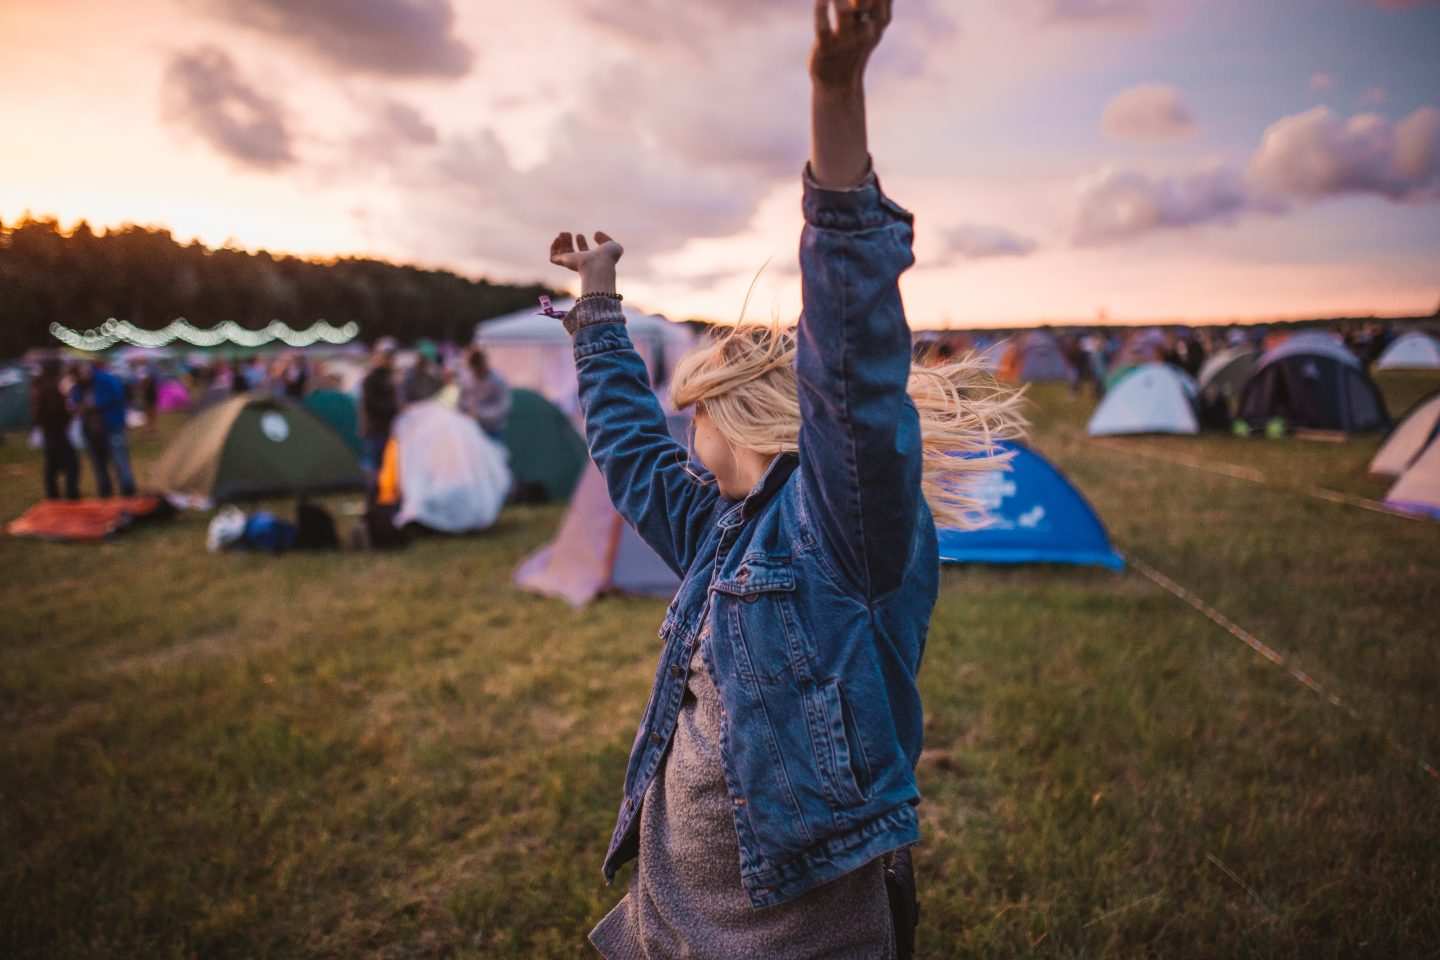 camping at a music festival